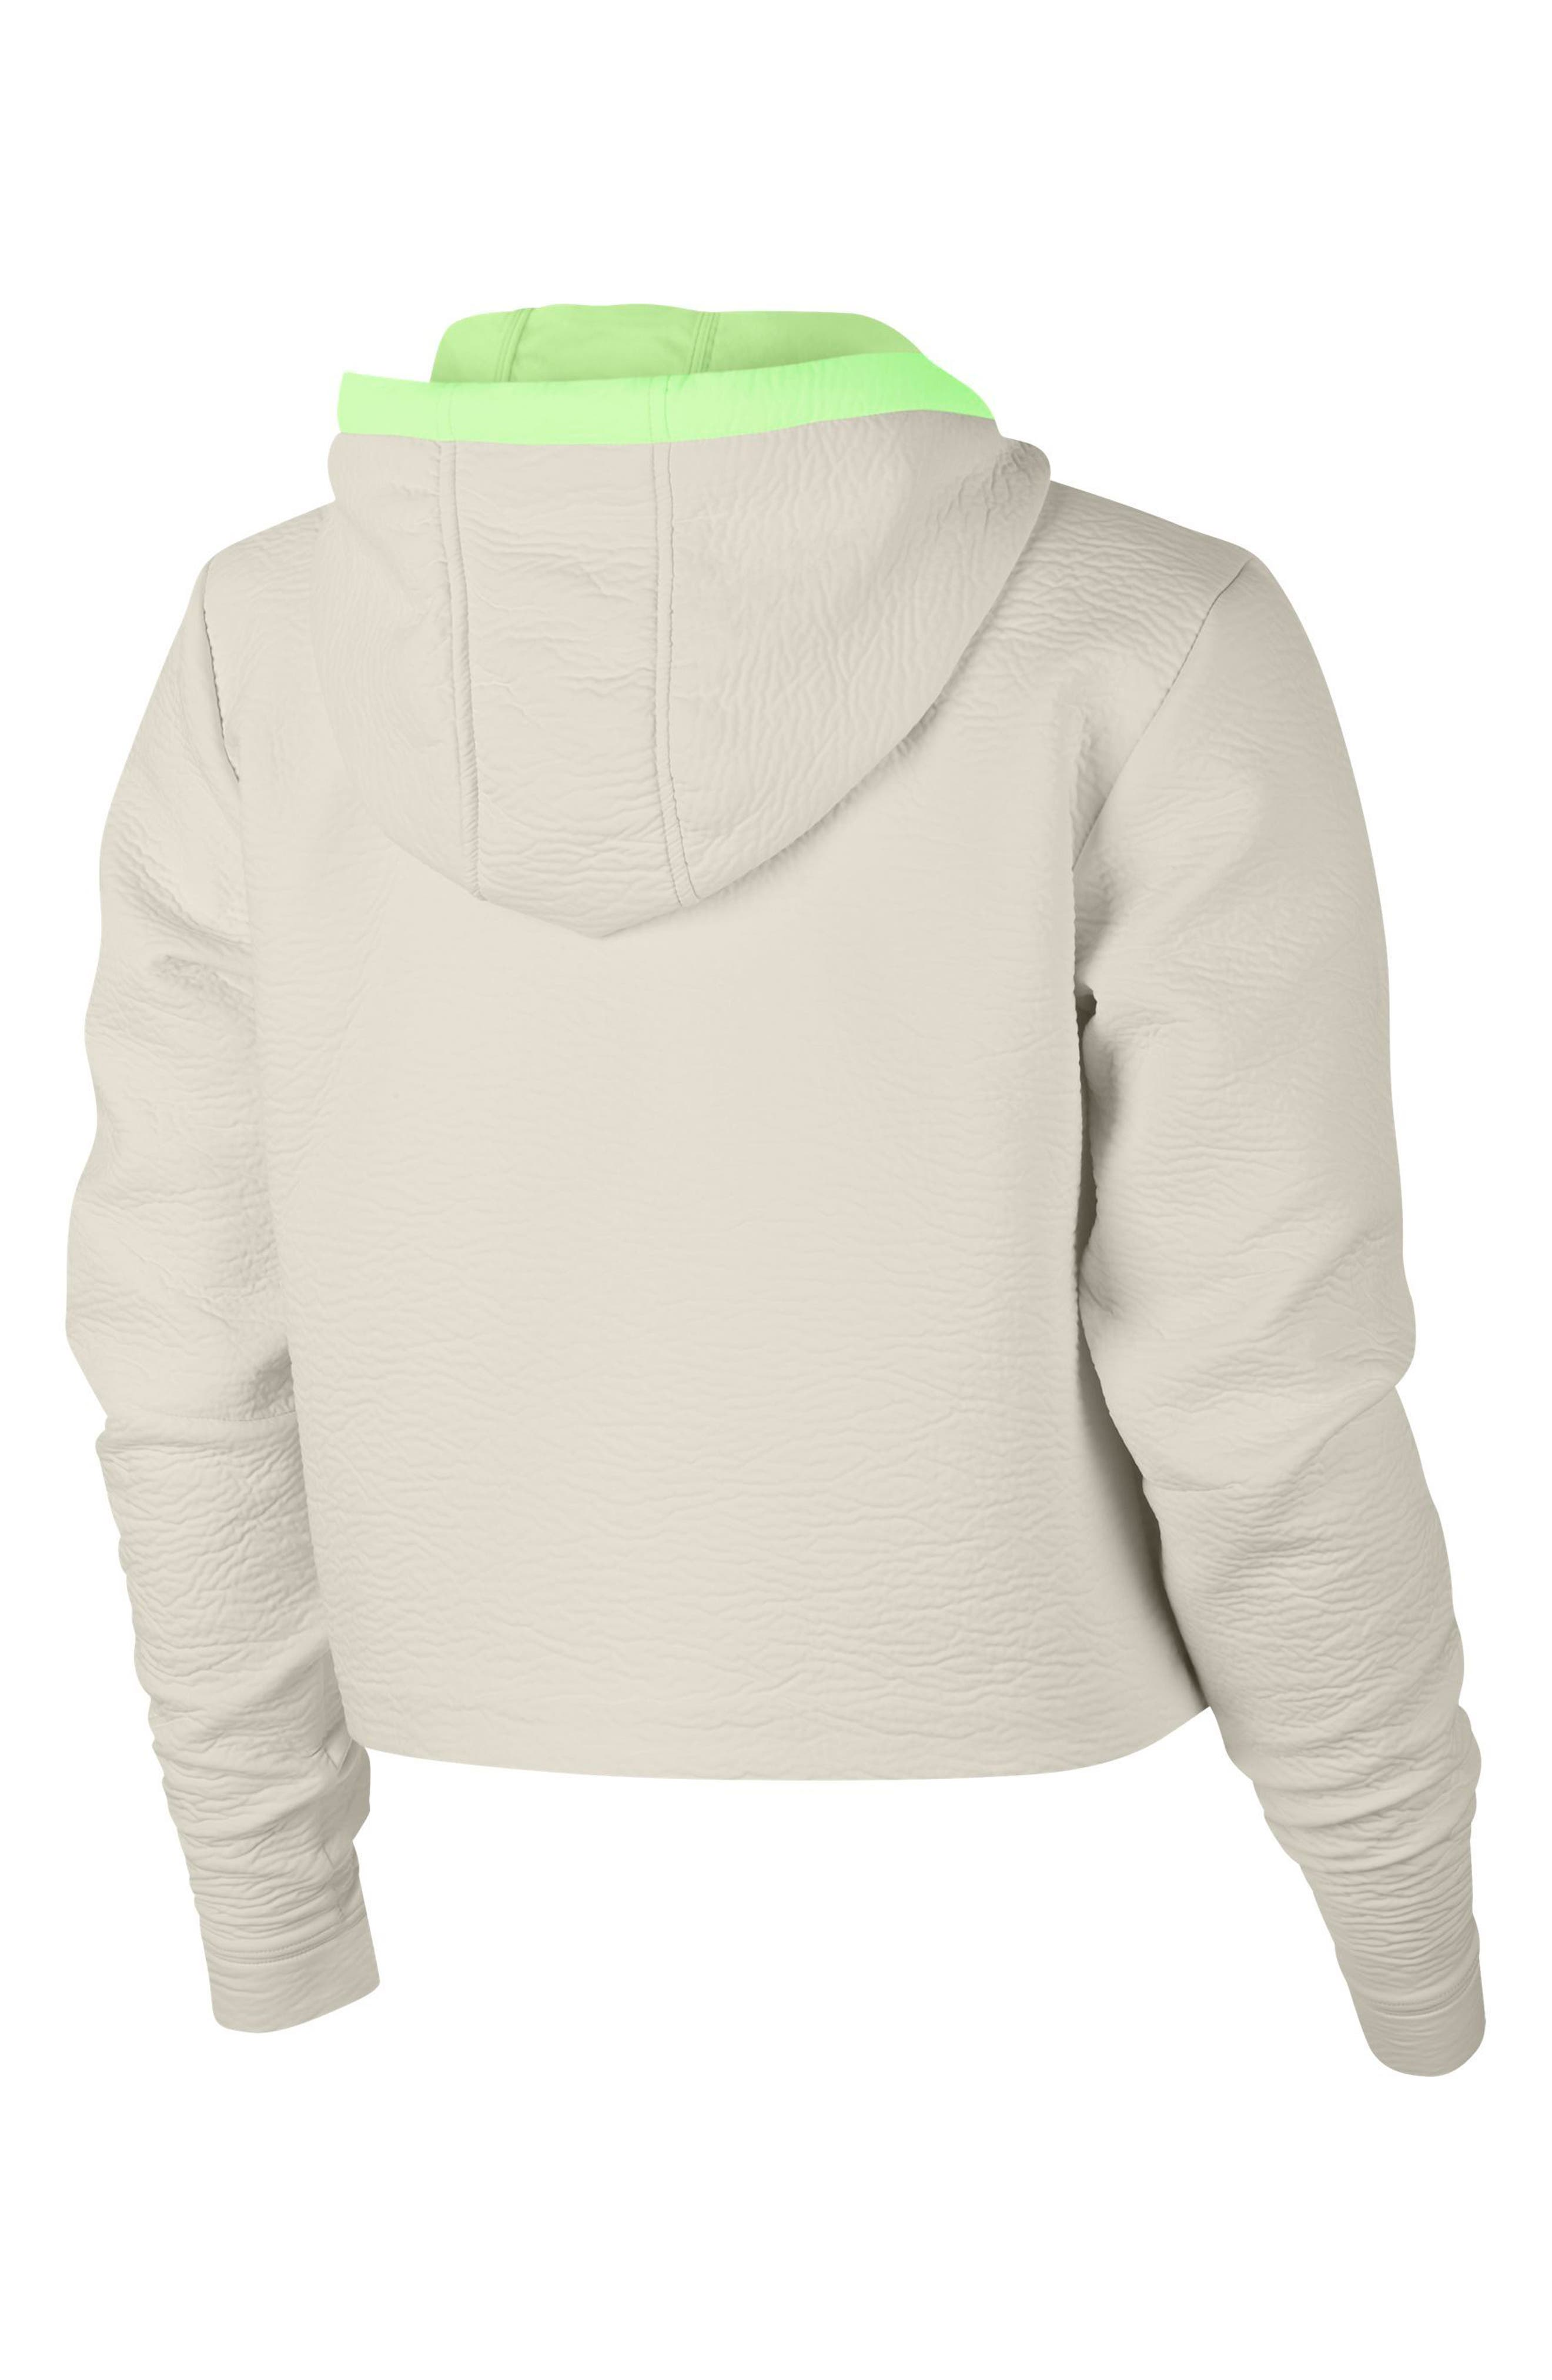 Sportswear Tech Pack Women's Hoodie,                             Alternate thumbnail 2, color,                             PHANTOM/ PHANTOM